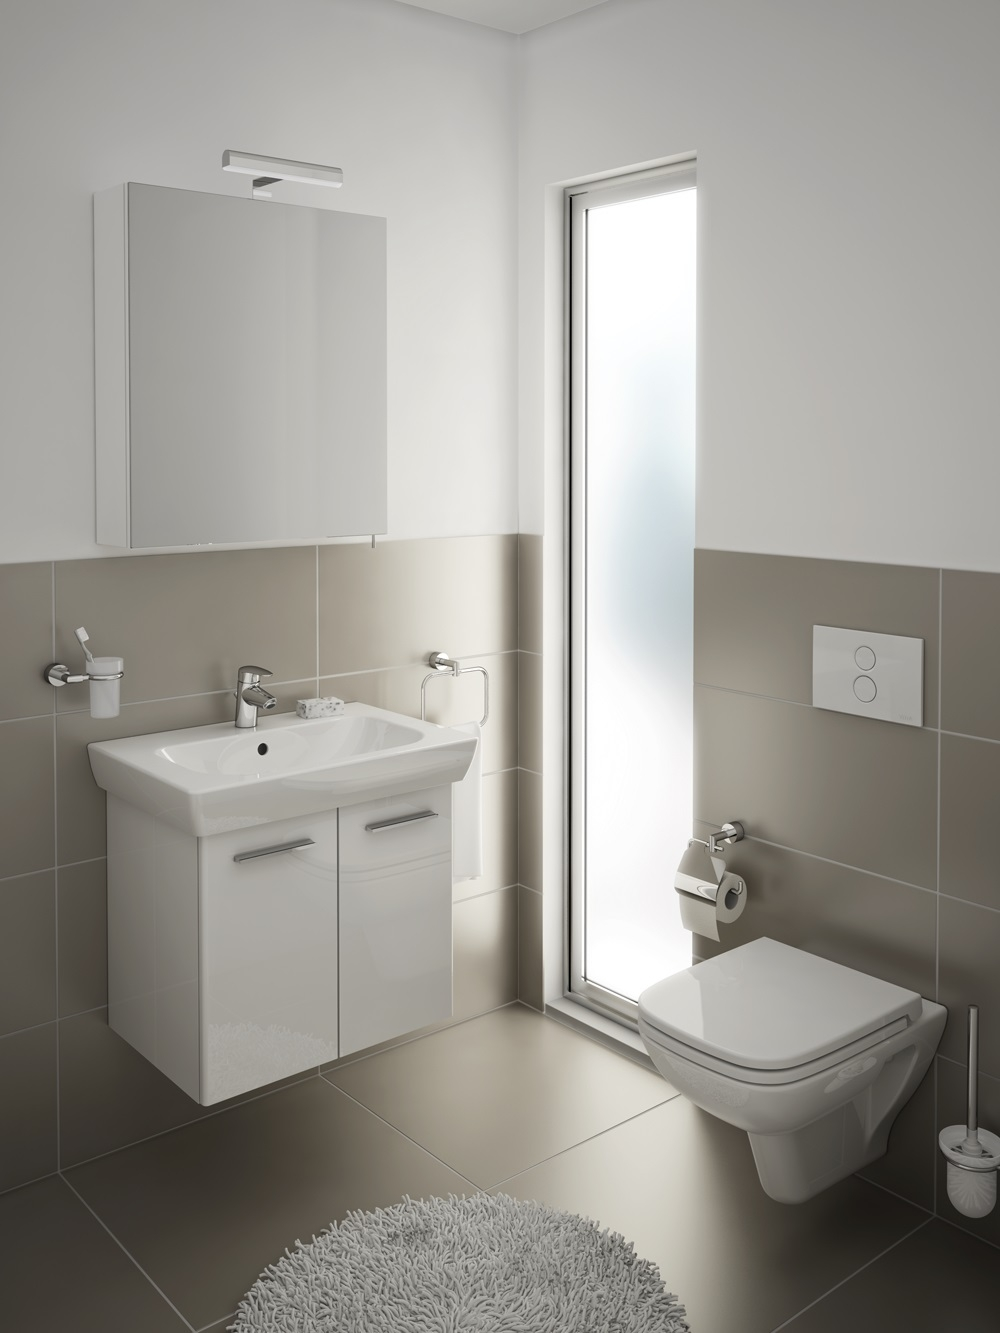 Discover en-suite bathrooms at More Bathrooms, Leeds